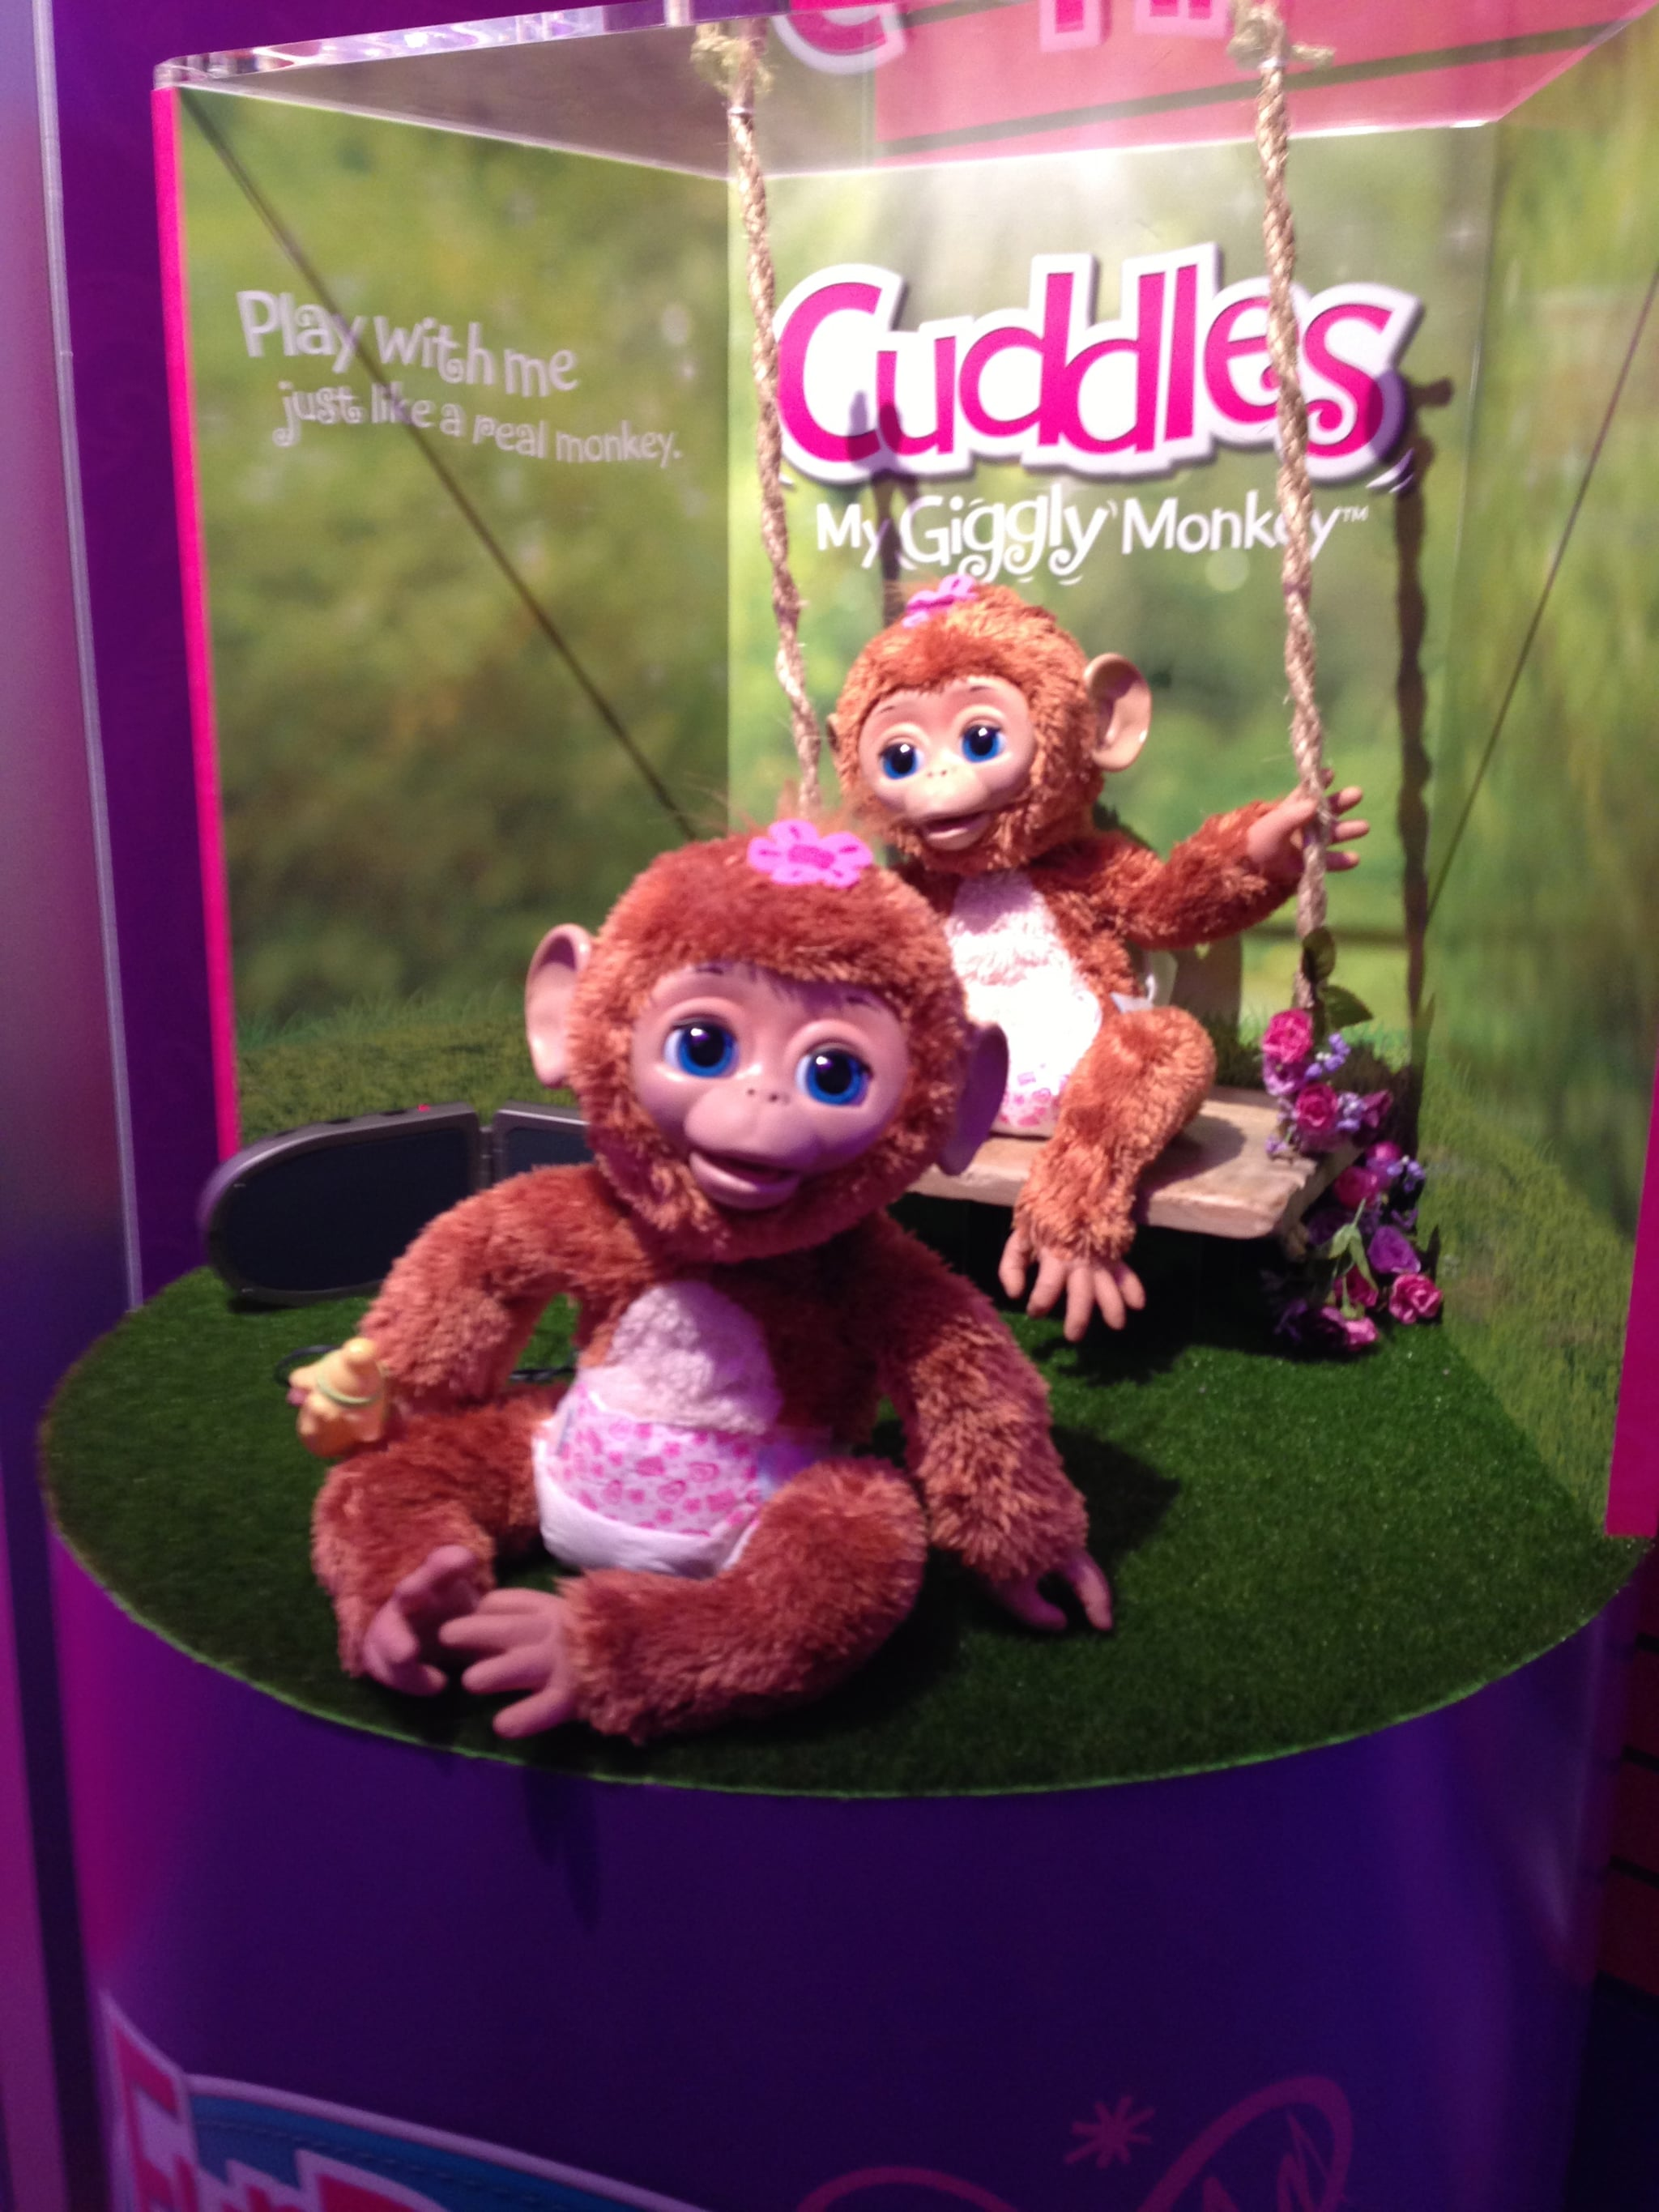 It's impossible not to crack up around Cuddles the Giggly Monkey.